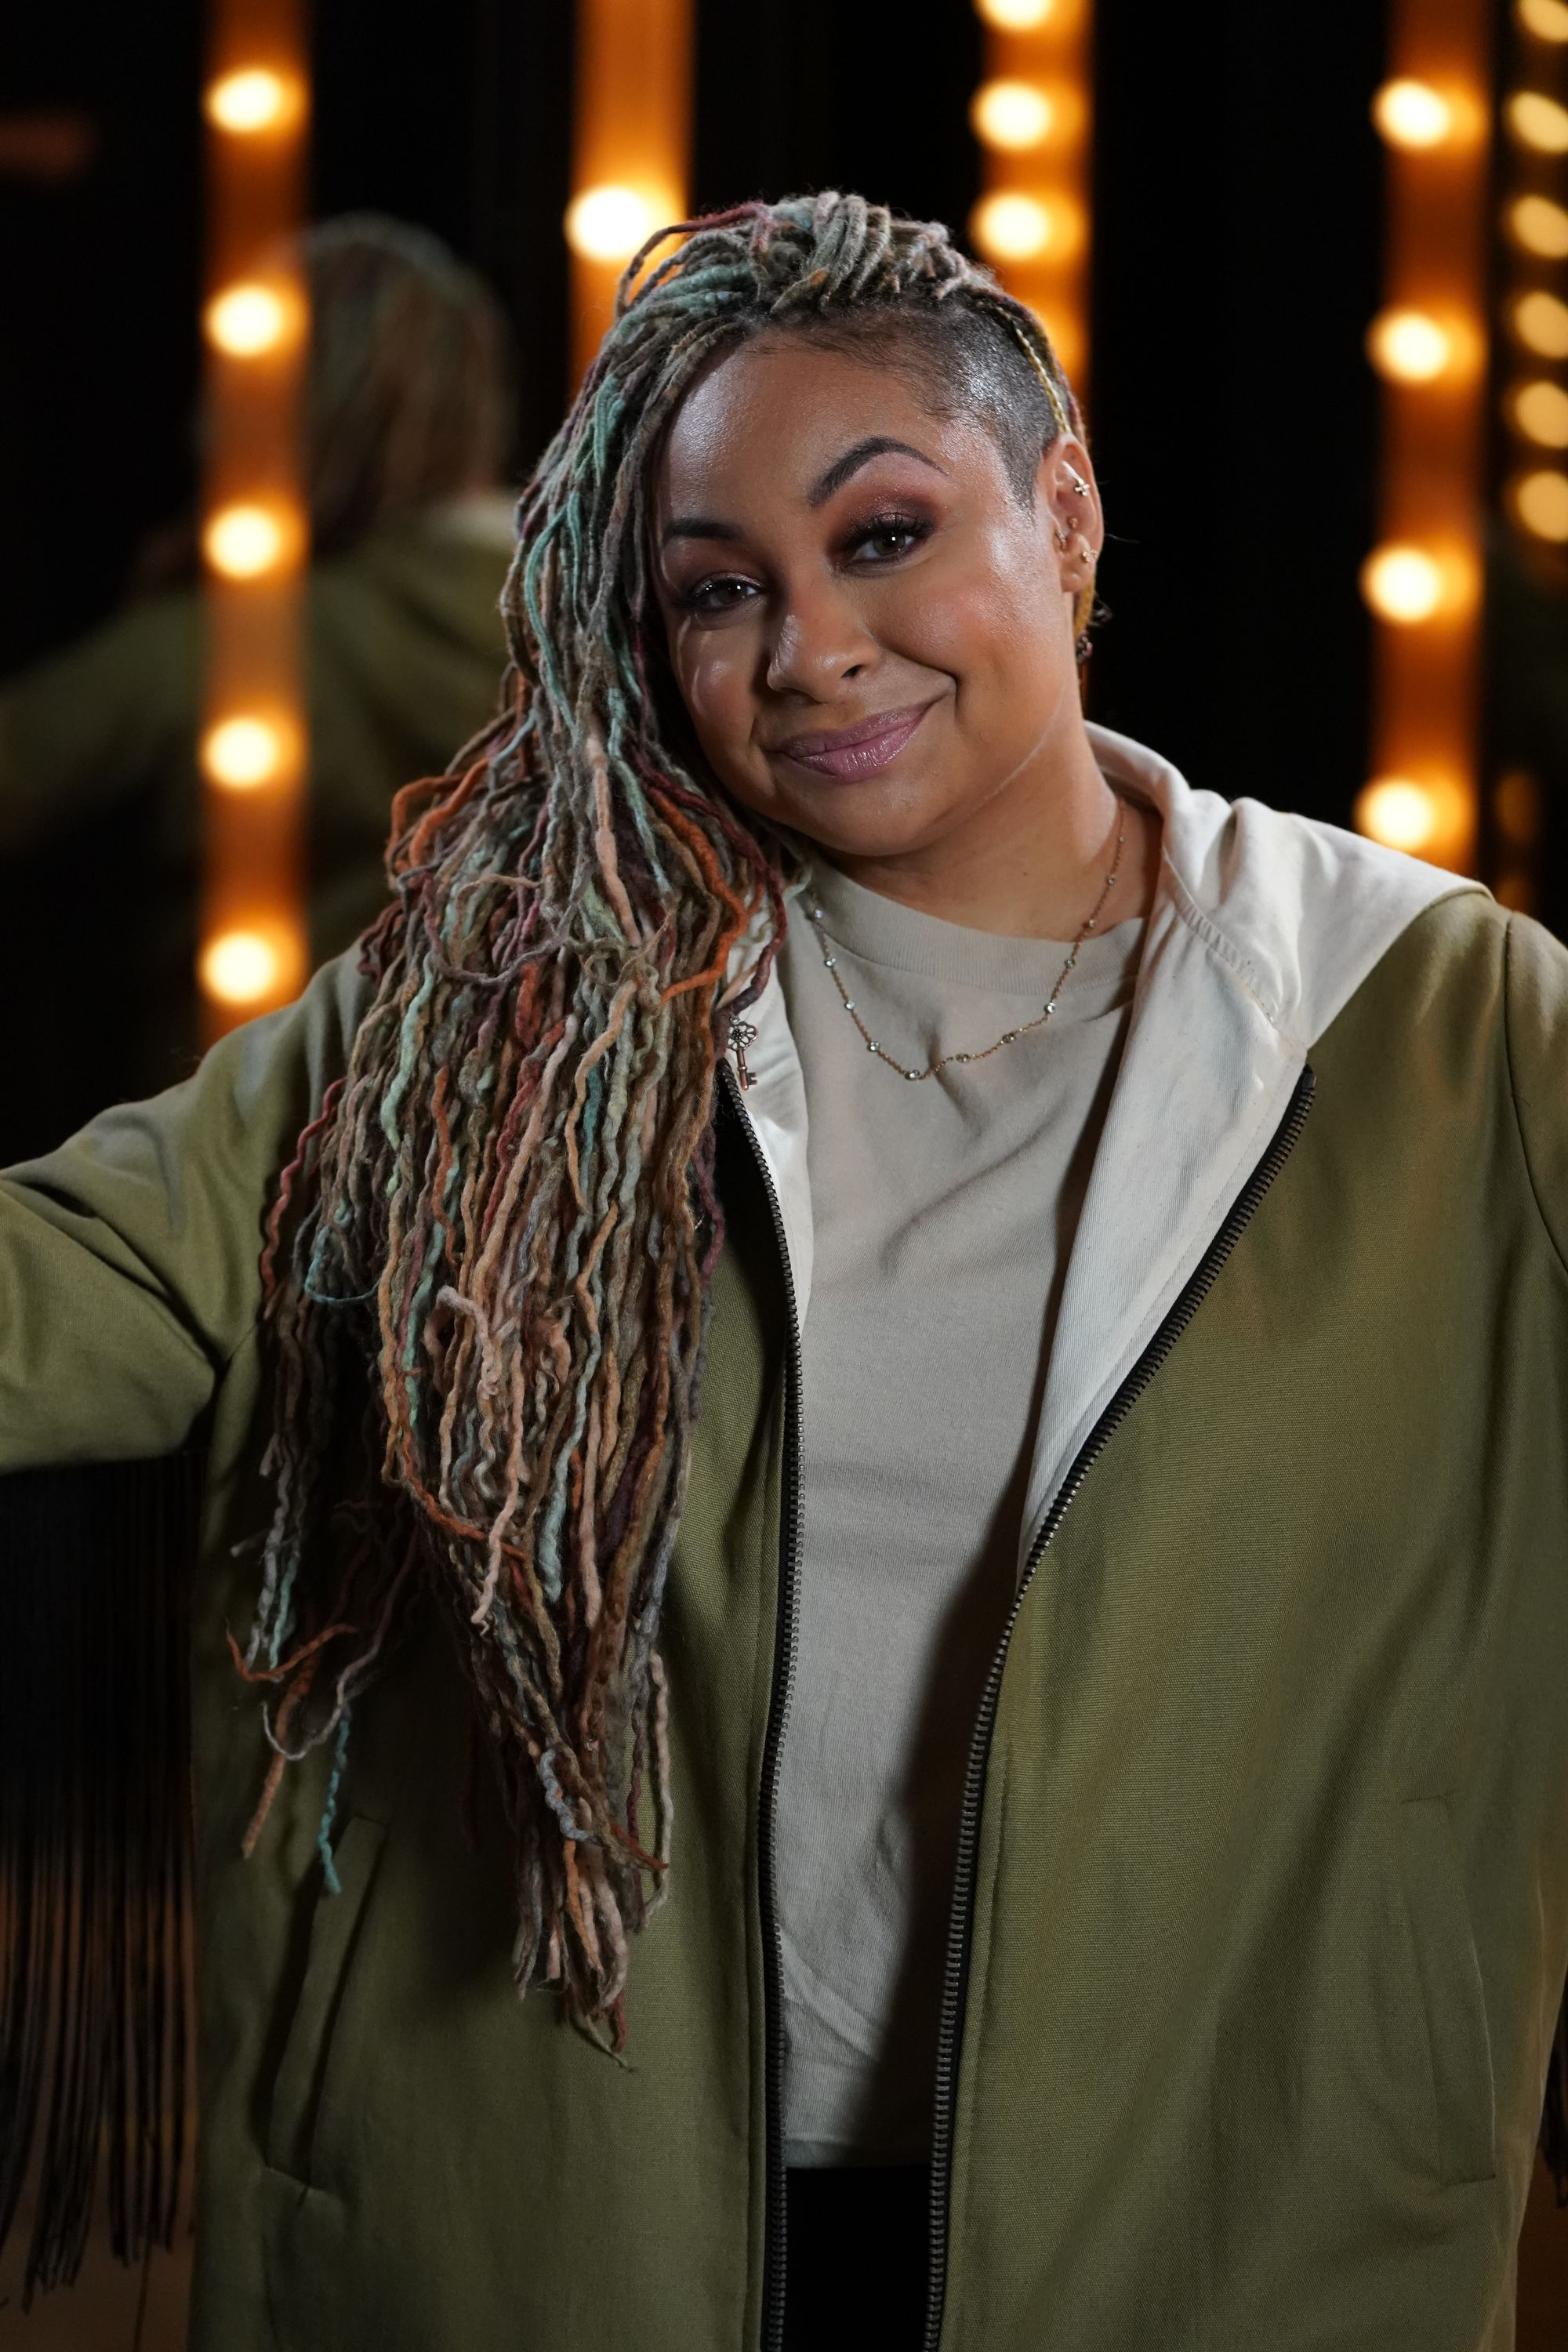 """Raven Symoné and Deon Cole make up the celebrity panel on """"To Tell the Truth,"""" which aired on, June 25. [Location and year unspecified]   Photo: Getty Images"""